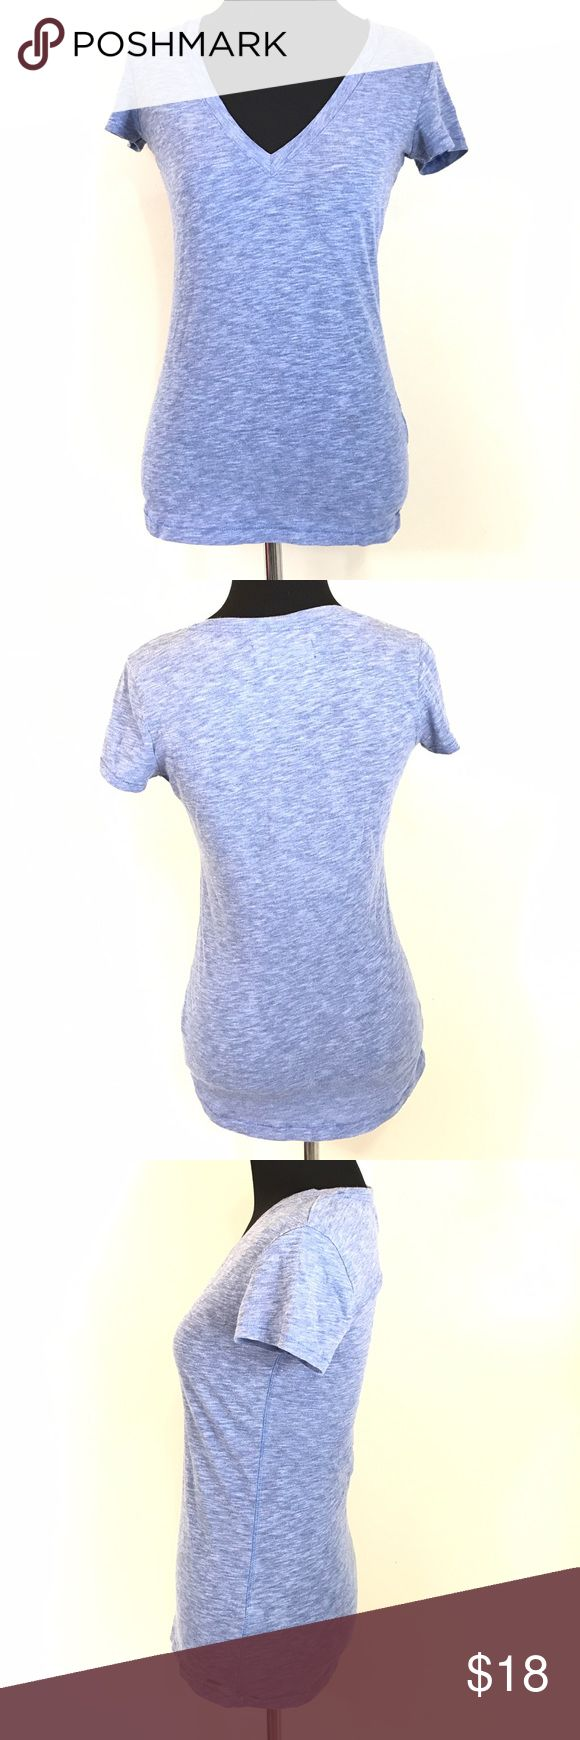 GARAGE GRG BLUE V NECK BASIC T SHIRT SIZE SMALL Good condition garage brand clothing basic blue v neck t shirt size small Garage Tops Tees - Short Sleeve